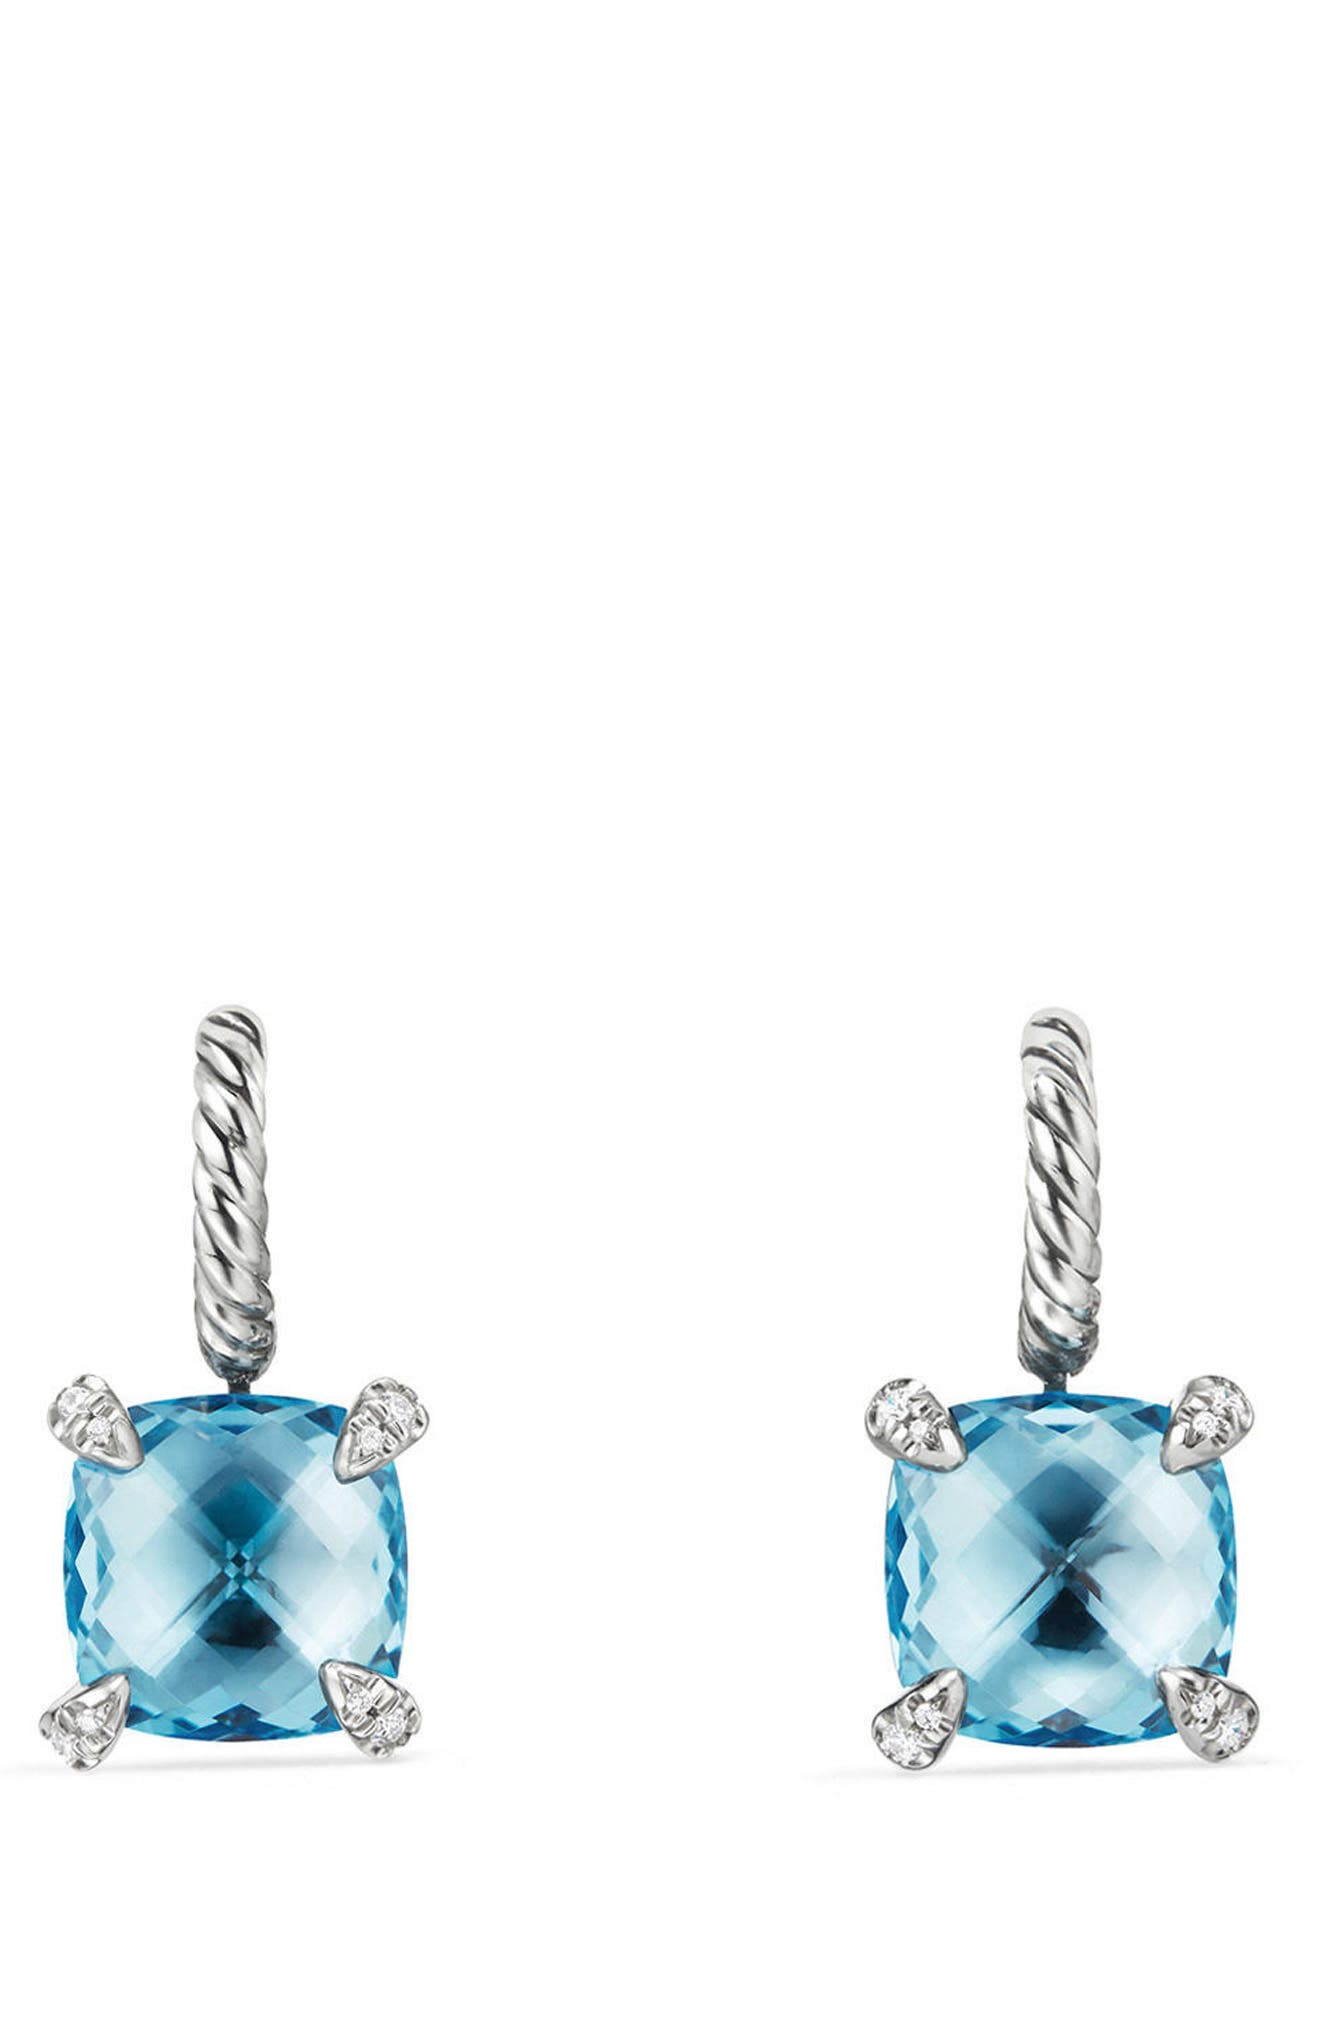 David Yurman Châtelaine Drop Earrings with Diamonds